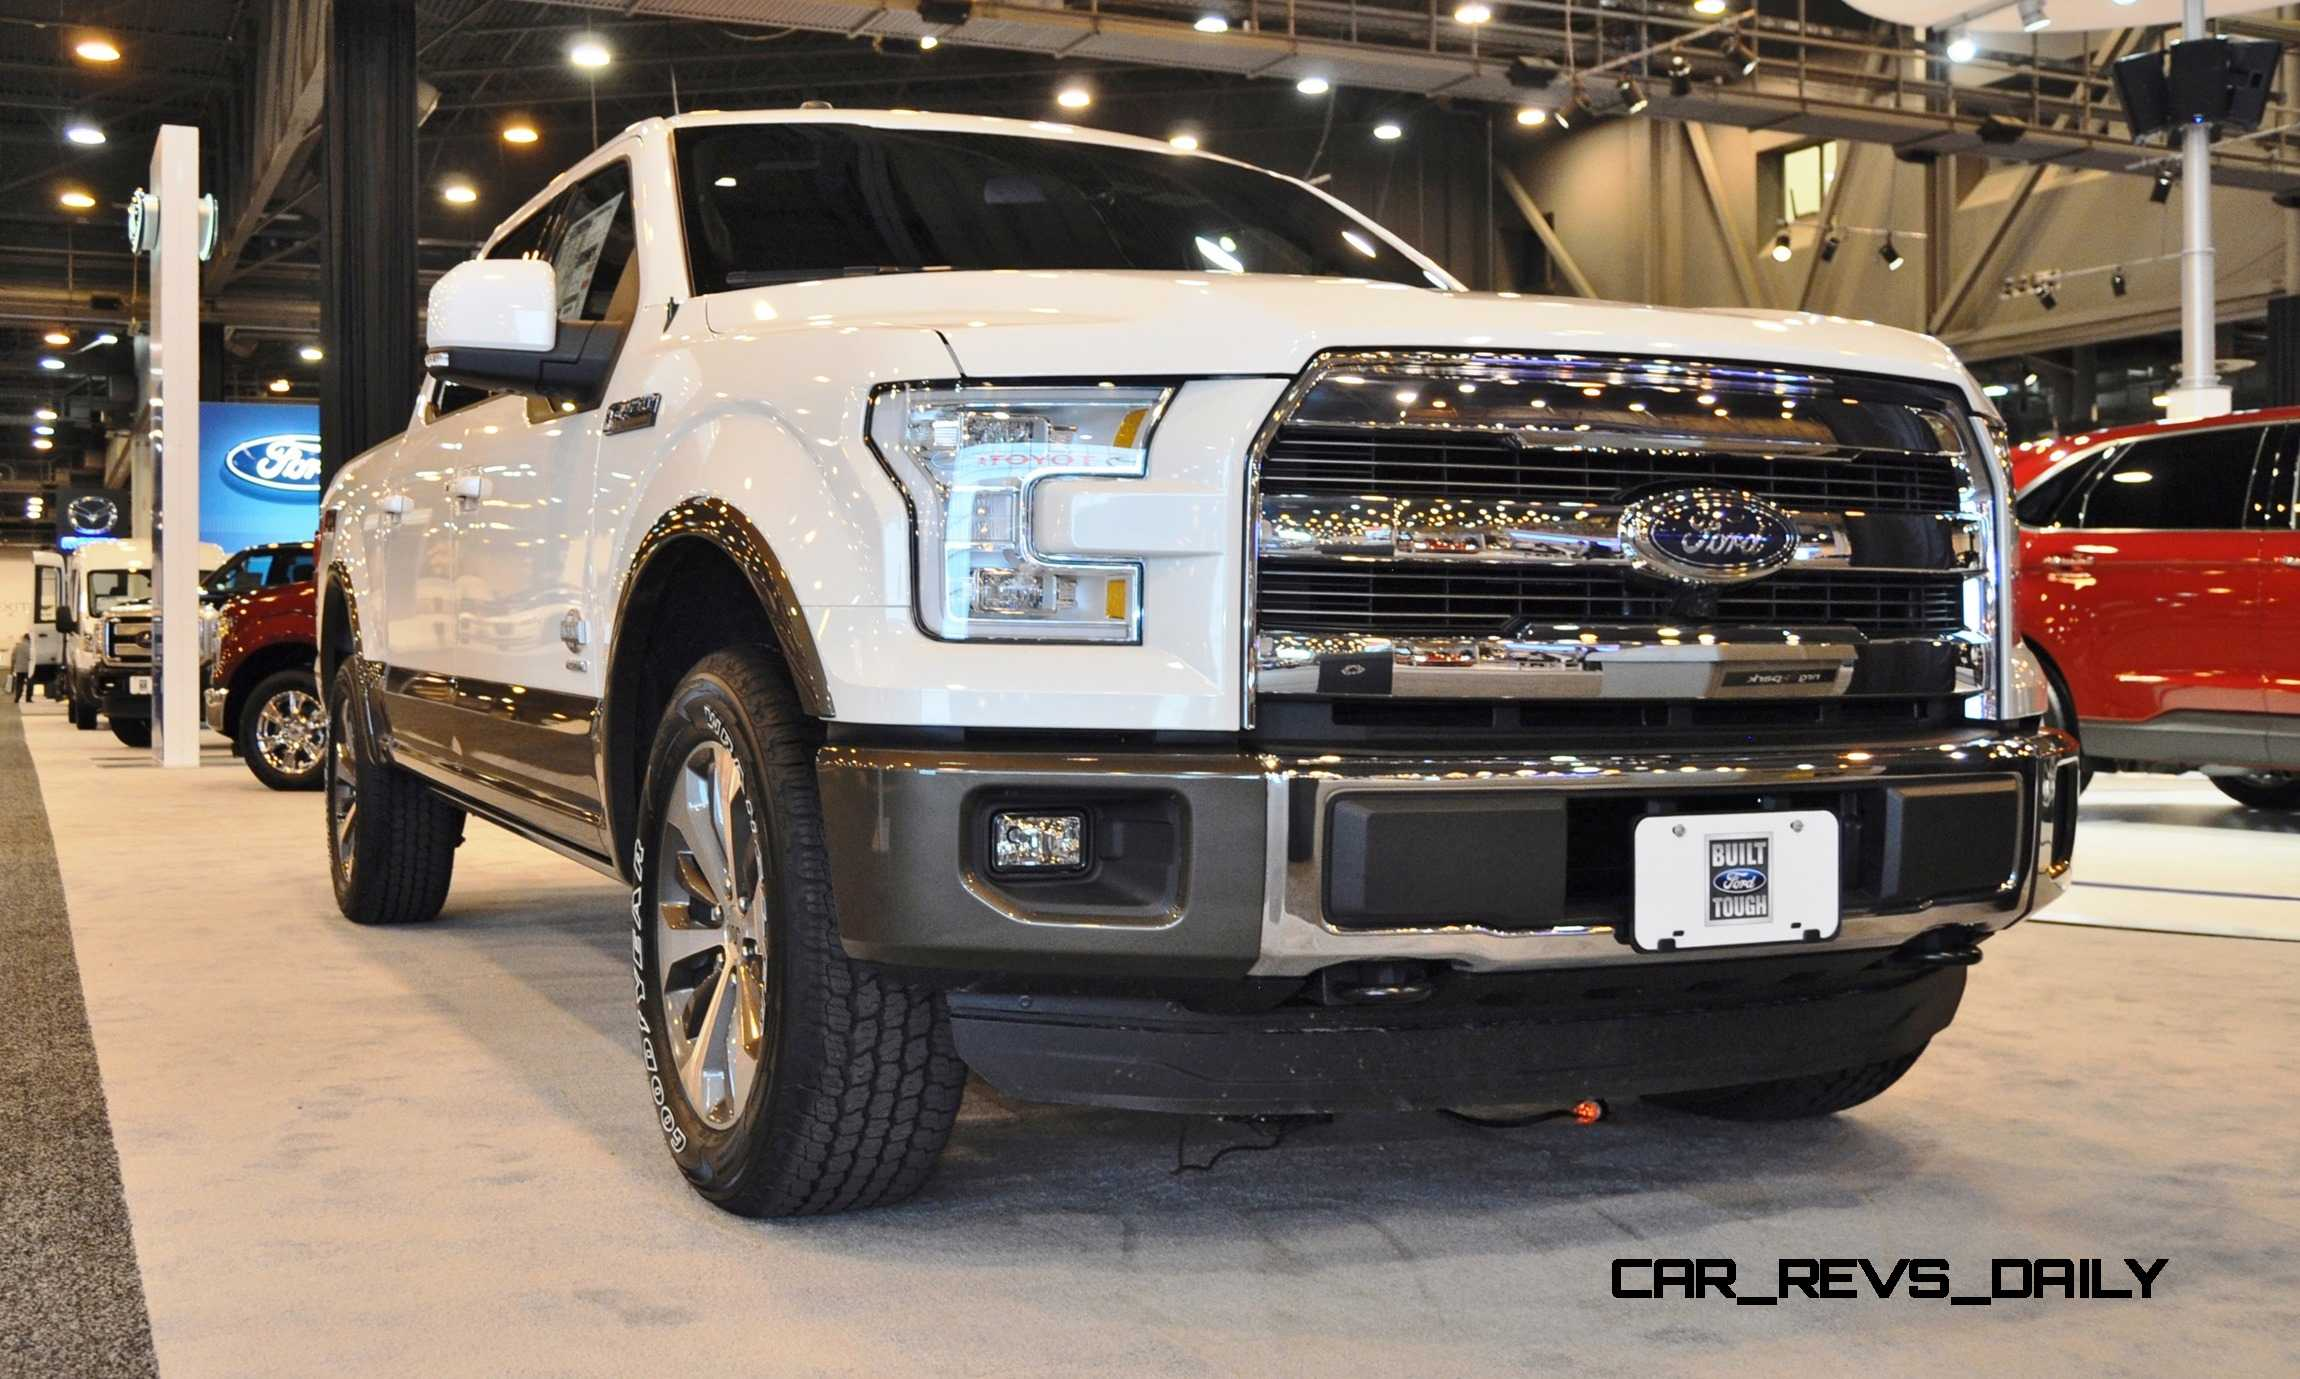 click image to open full size image - 2015 Ford F 150 King Ranch Tailgate